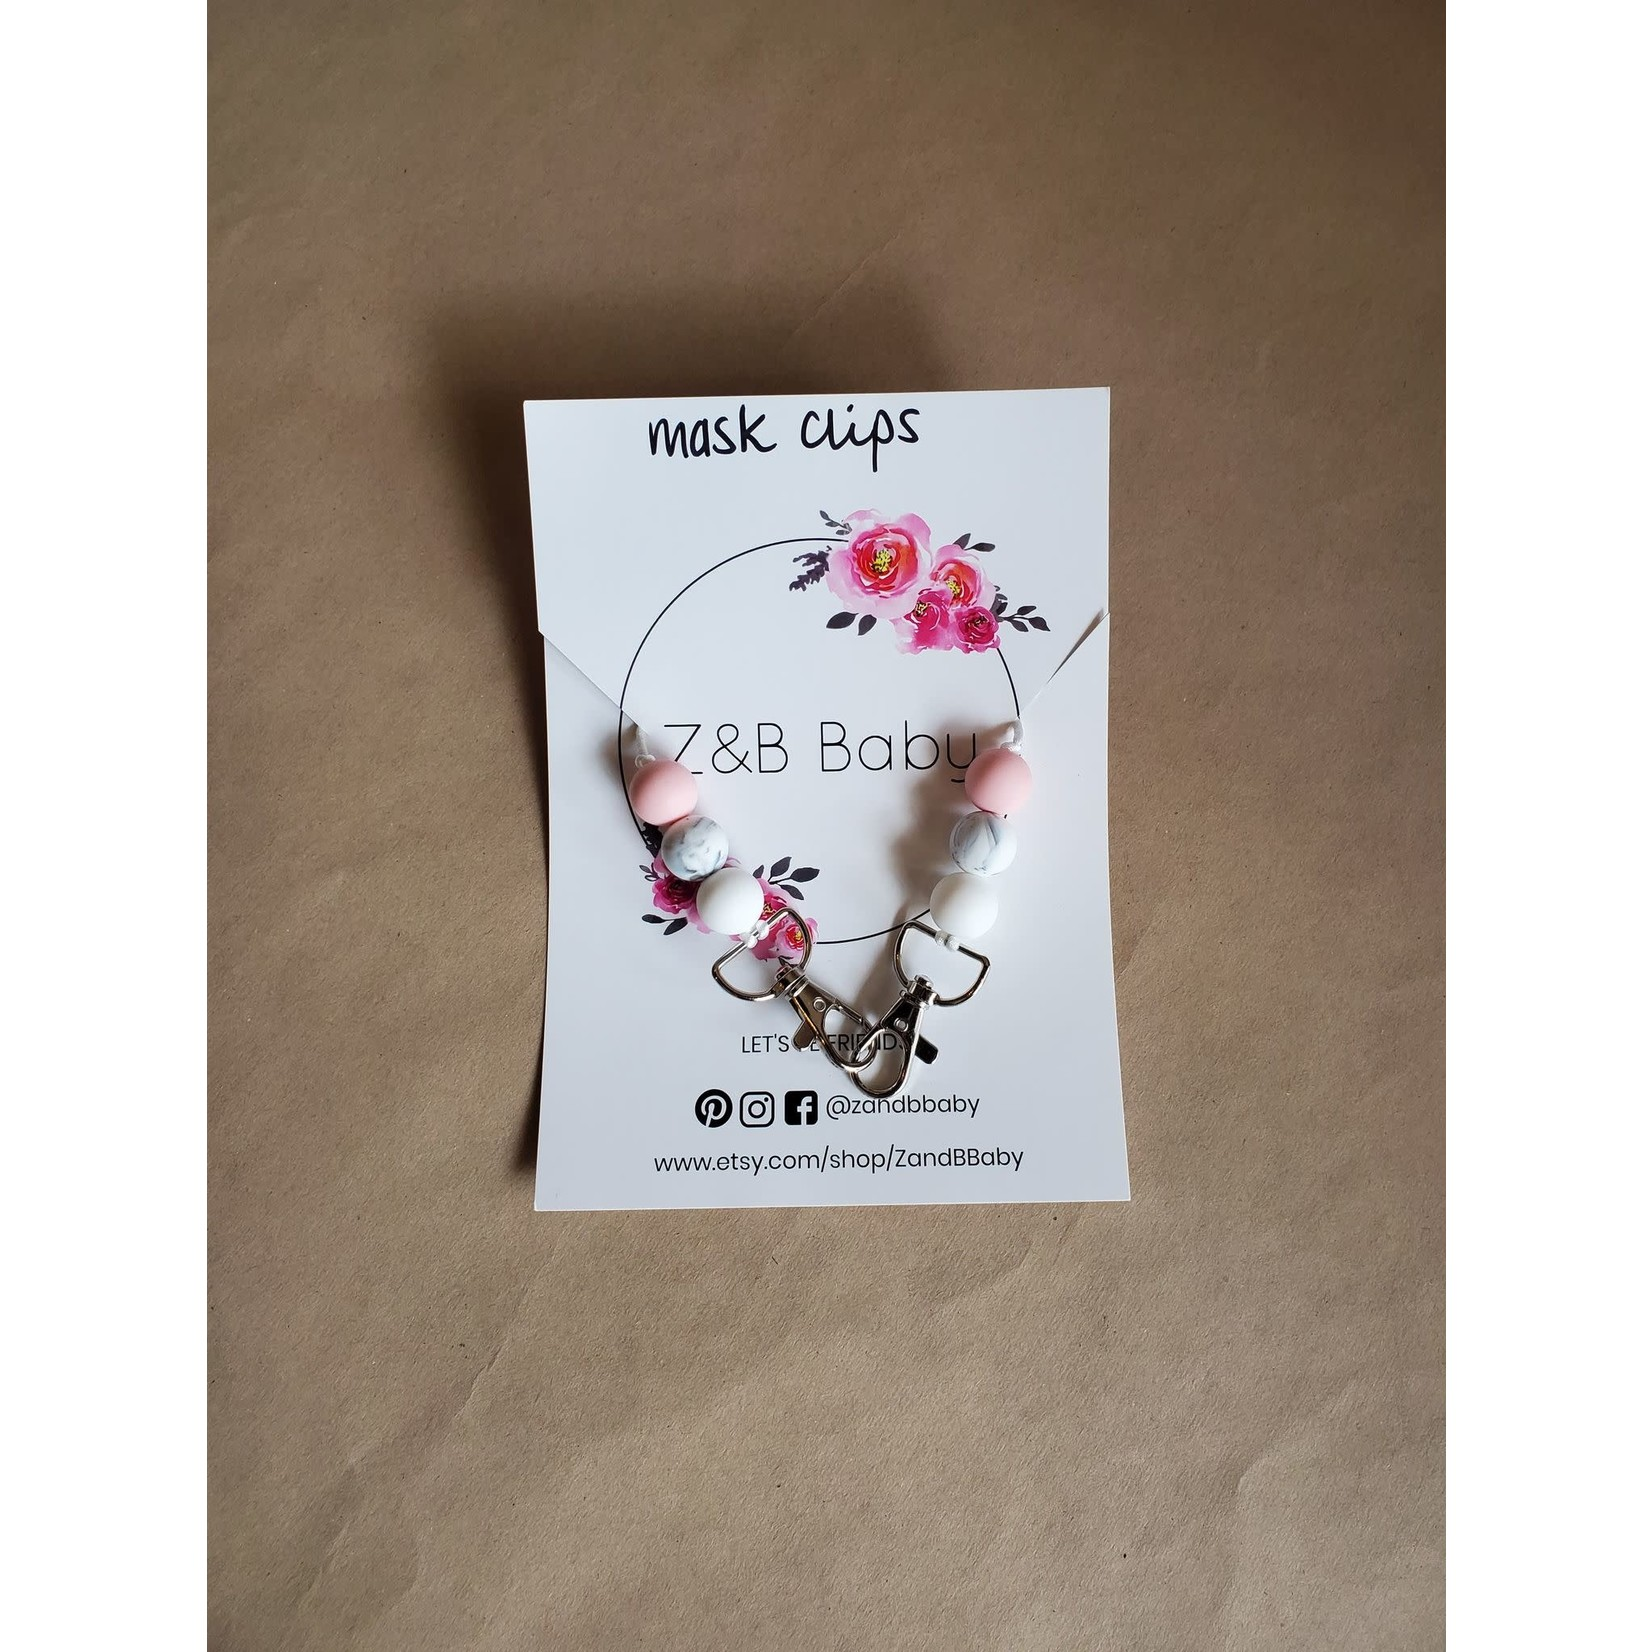 Z&B Baby mask clips - Pink